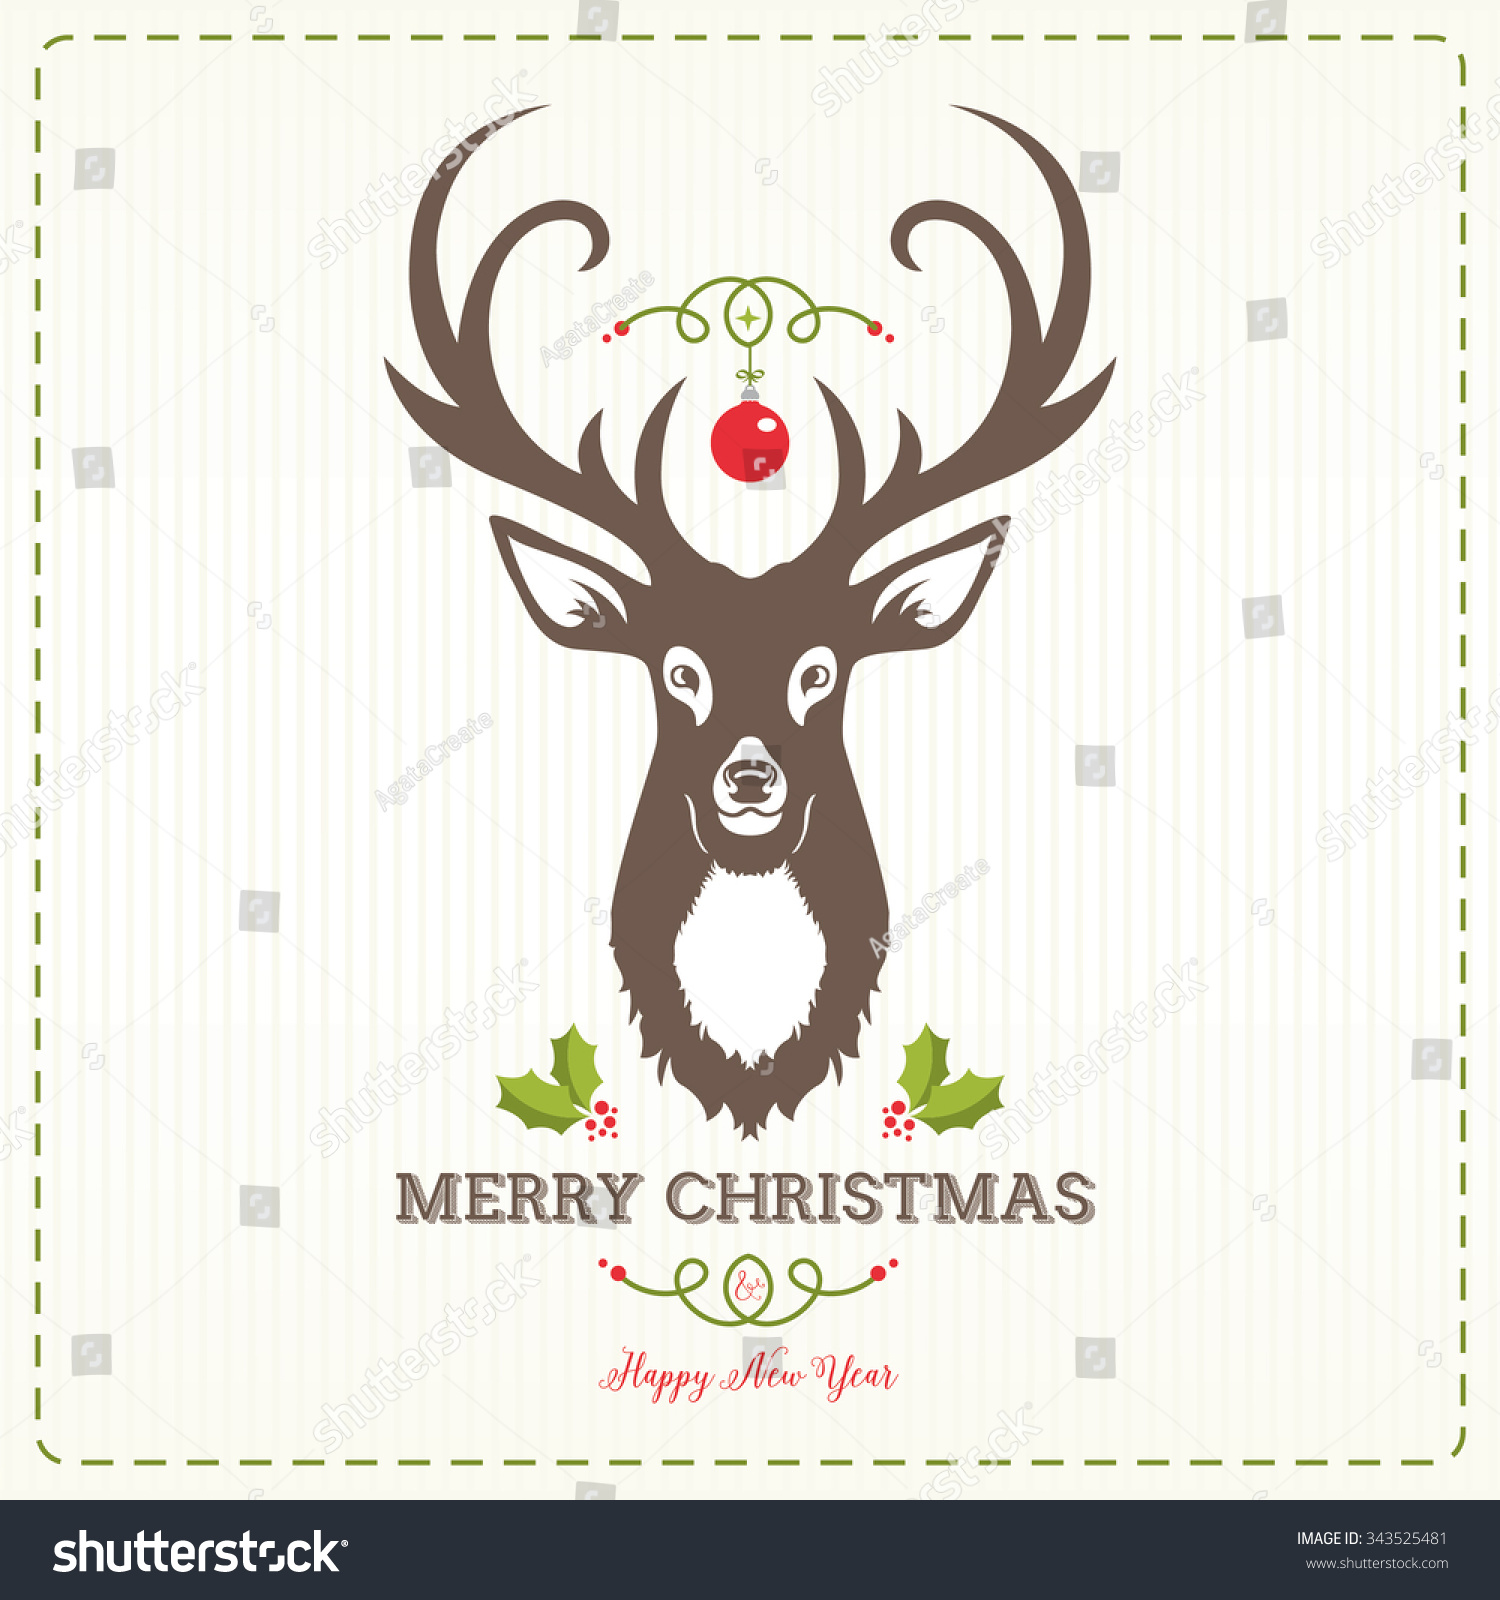 Christmas Design With Reindeer Stock Vector Illustration ...